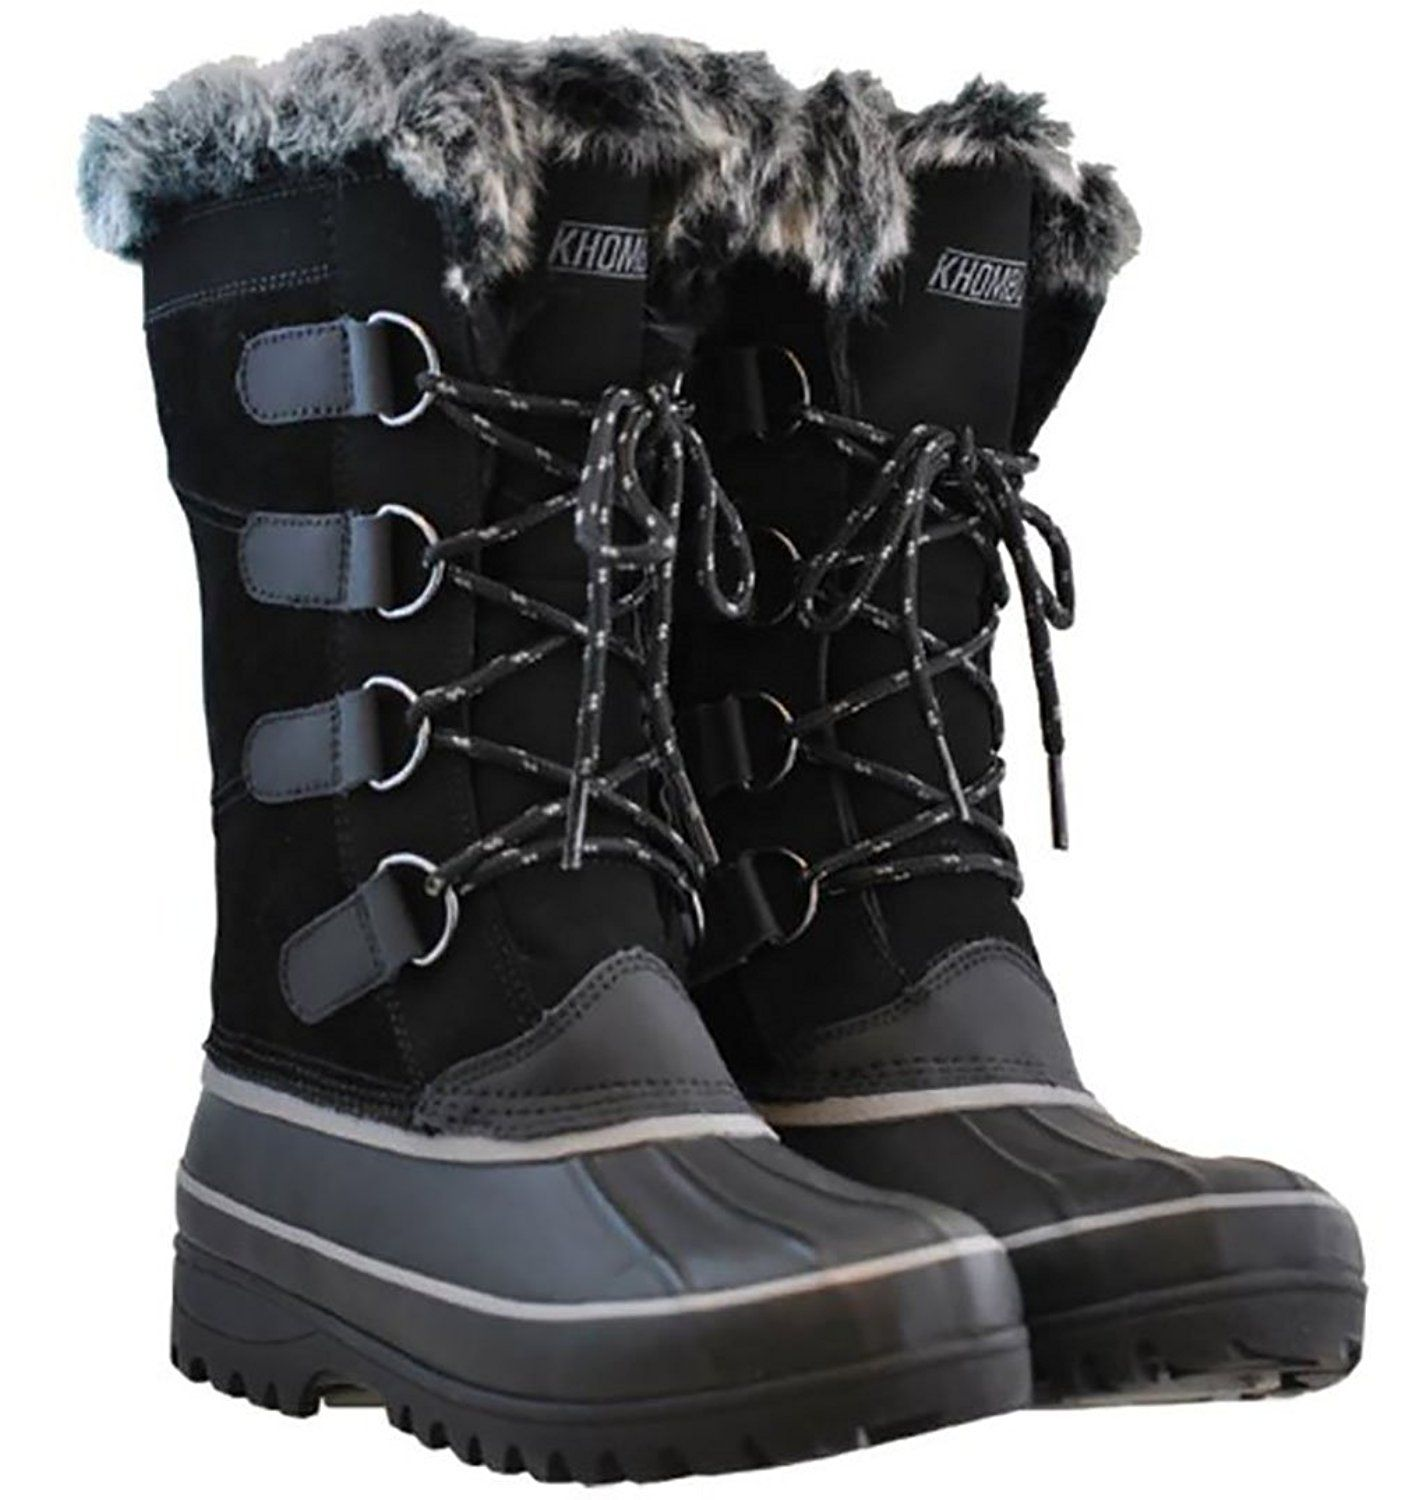 Shoes Women's Nordic Winter Boot